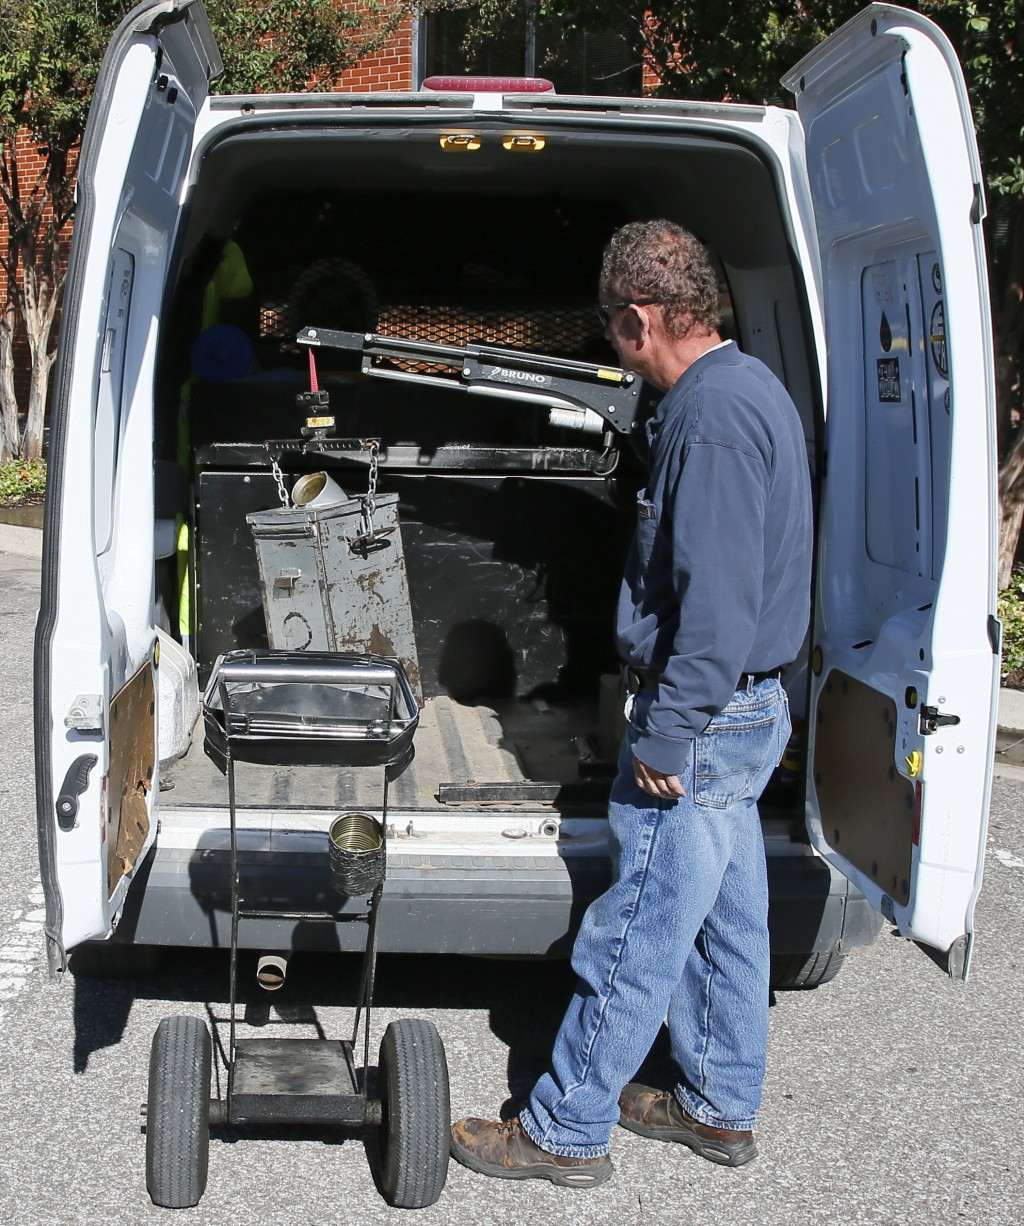 In this Wednesday, Oct. 11, 2017 photo, Wade Beal, parking meter technician, uses a small crane in the back of his vehicle to remove the can which hol...